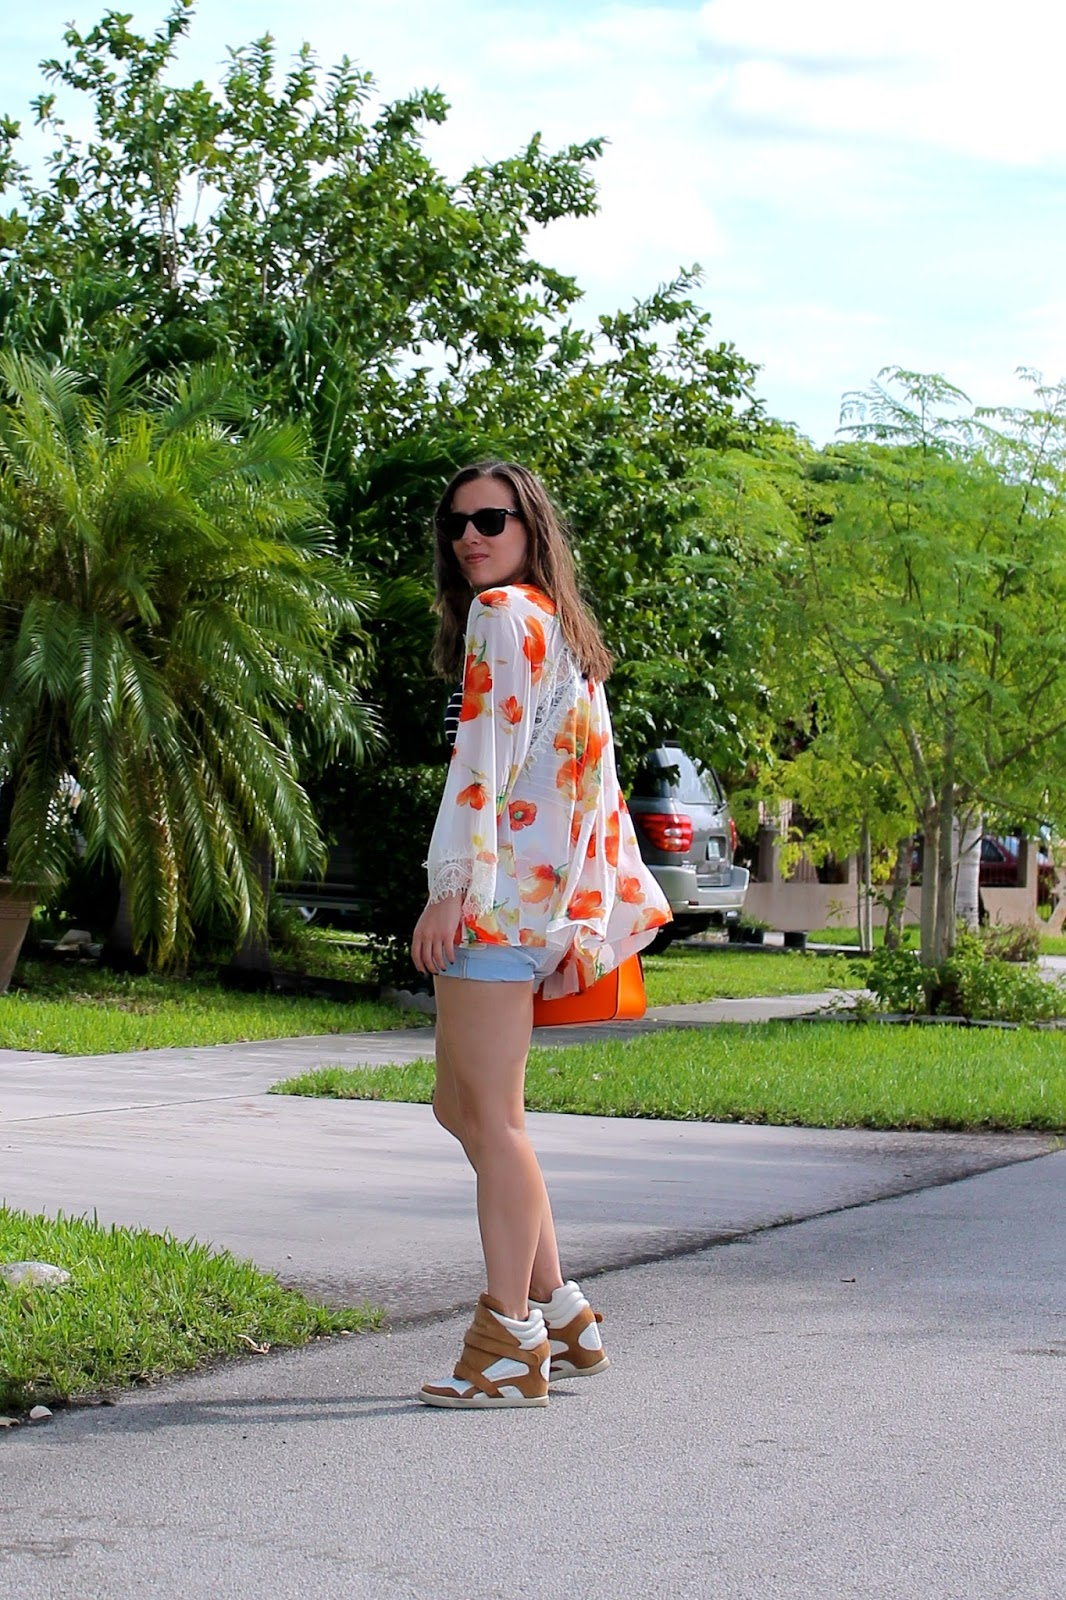 Nordstrom Rack, forever 21, gap, Kate Spade, Ray-Ban, LF Stores, Anthropologie, fashion blog, style blog, Miami fashion blogger, Miami style, gameday, gameday fashion